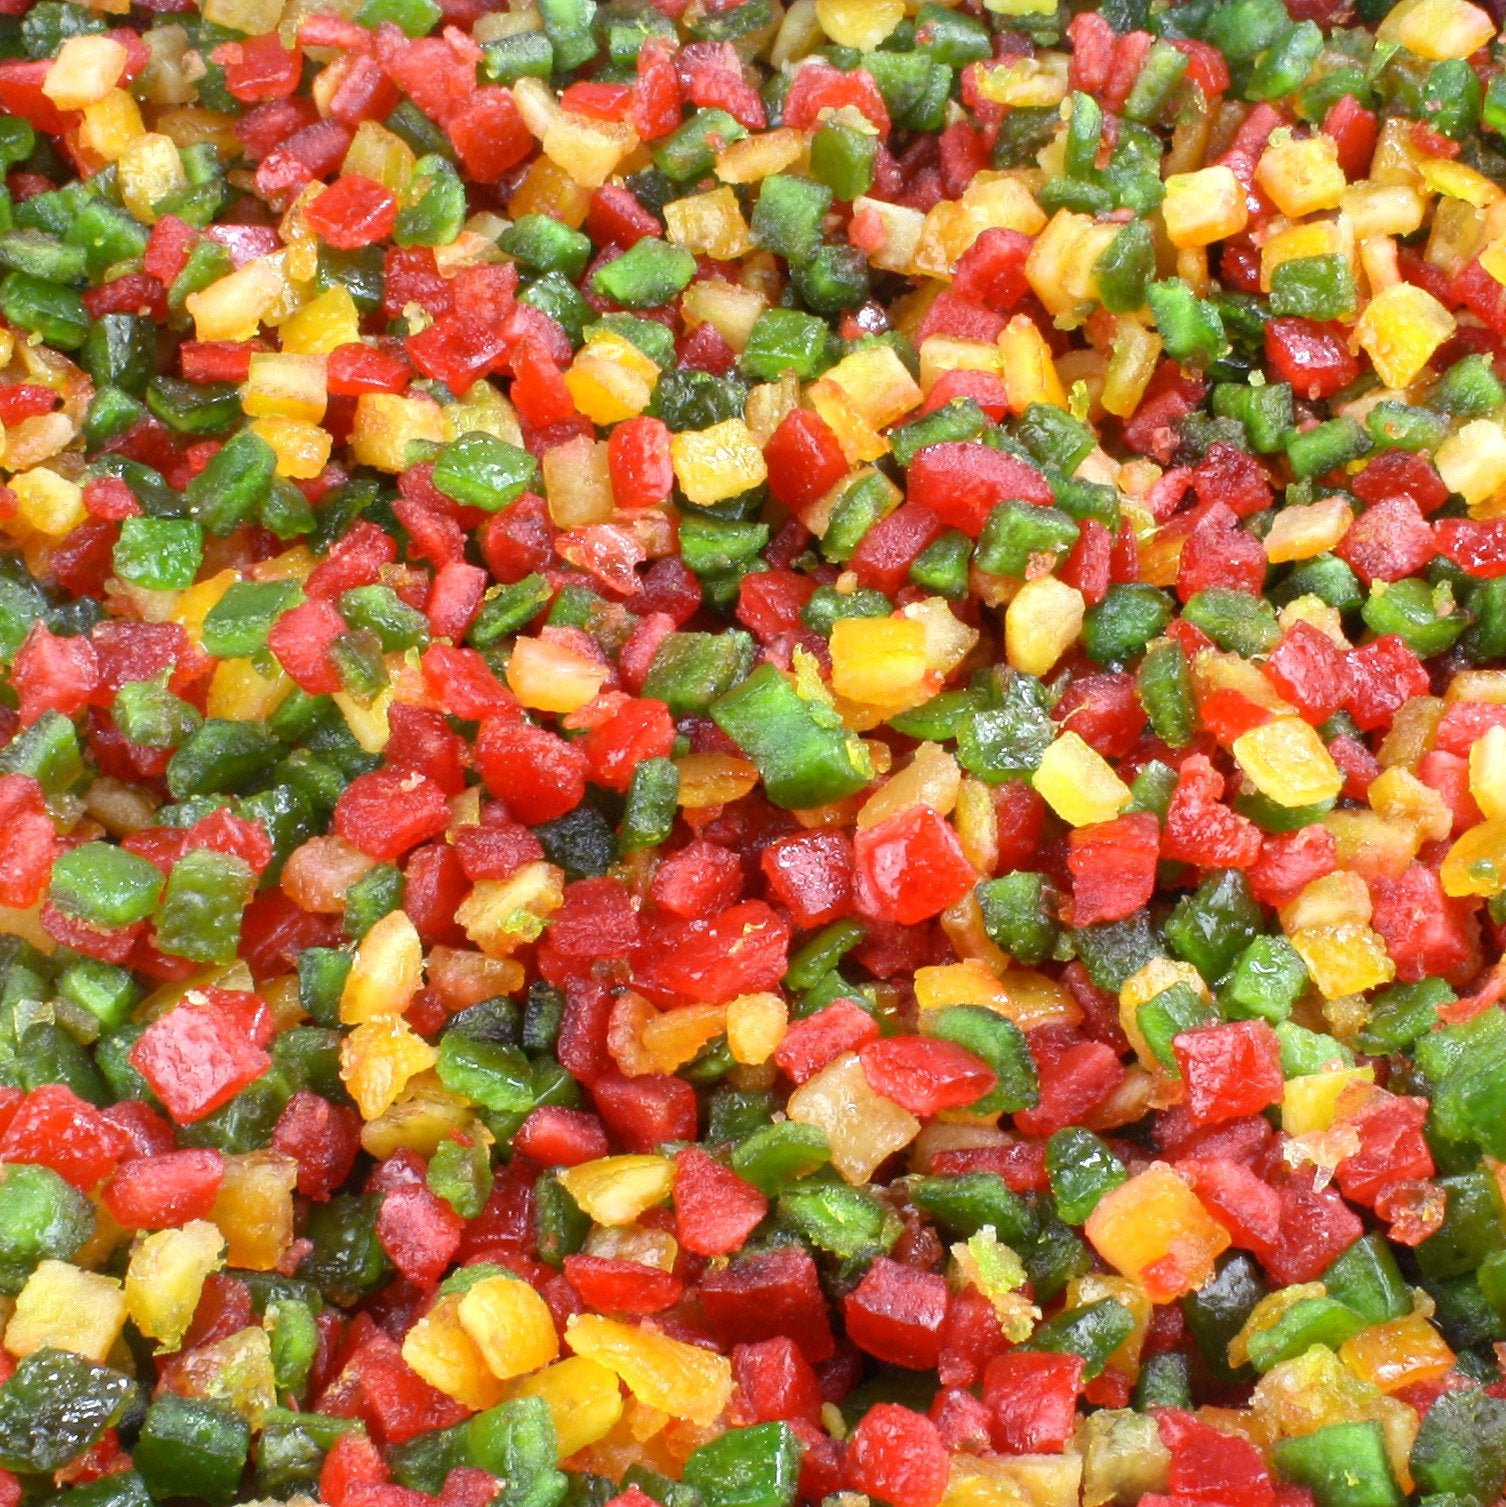 ab5290bfc16 Tutti Frutti Mix Diced Candied Fruit (1 4) – Bakers Authority